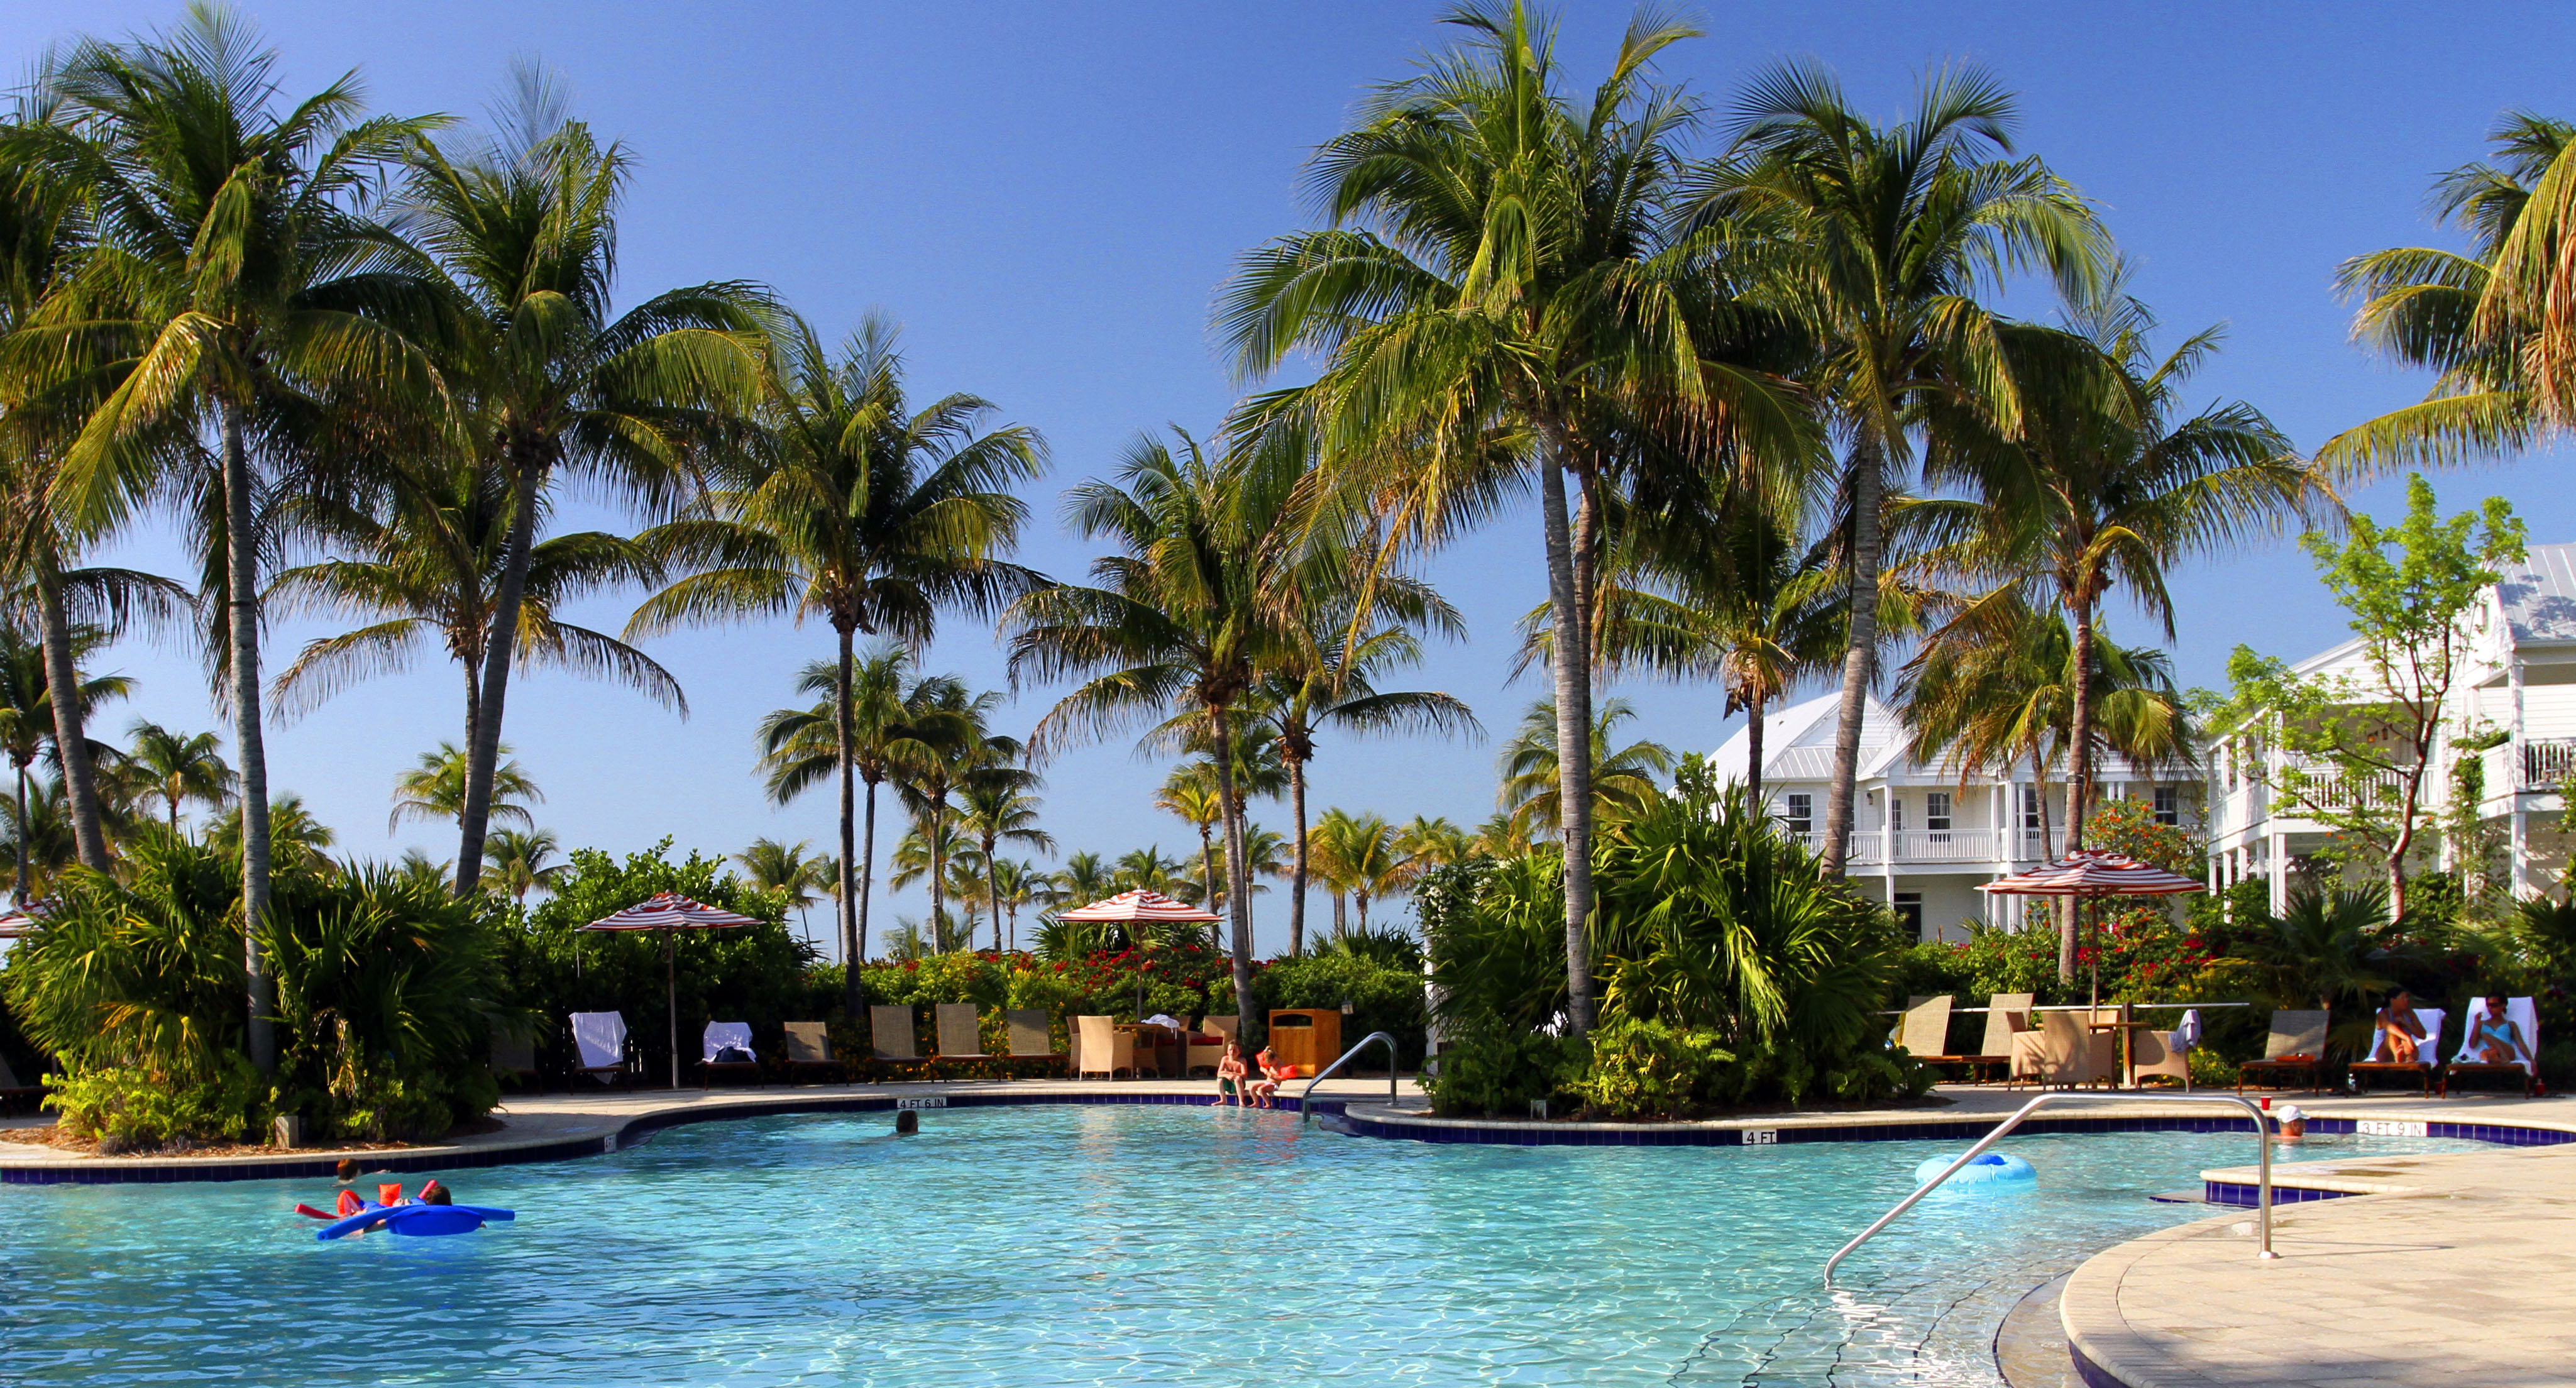 ... | Luxury Florida Keys Resorts > Tranquility Bay Beach Resort > Blog